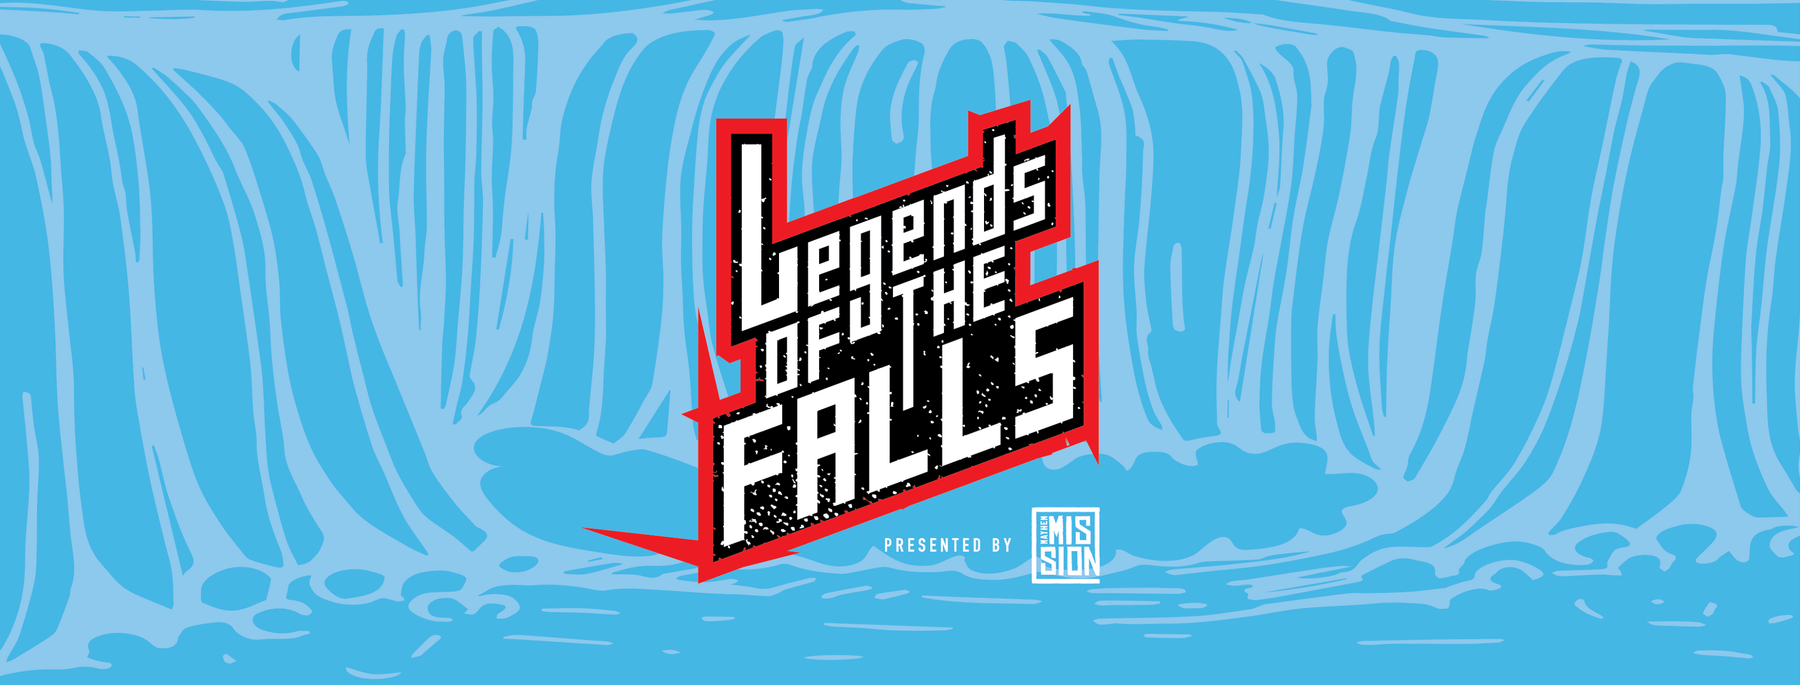 Legends of the Falls